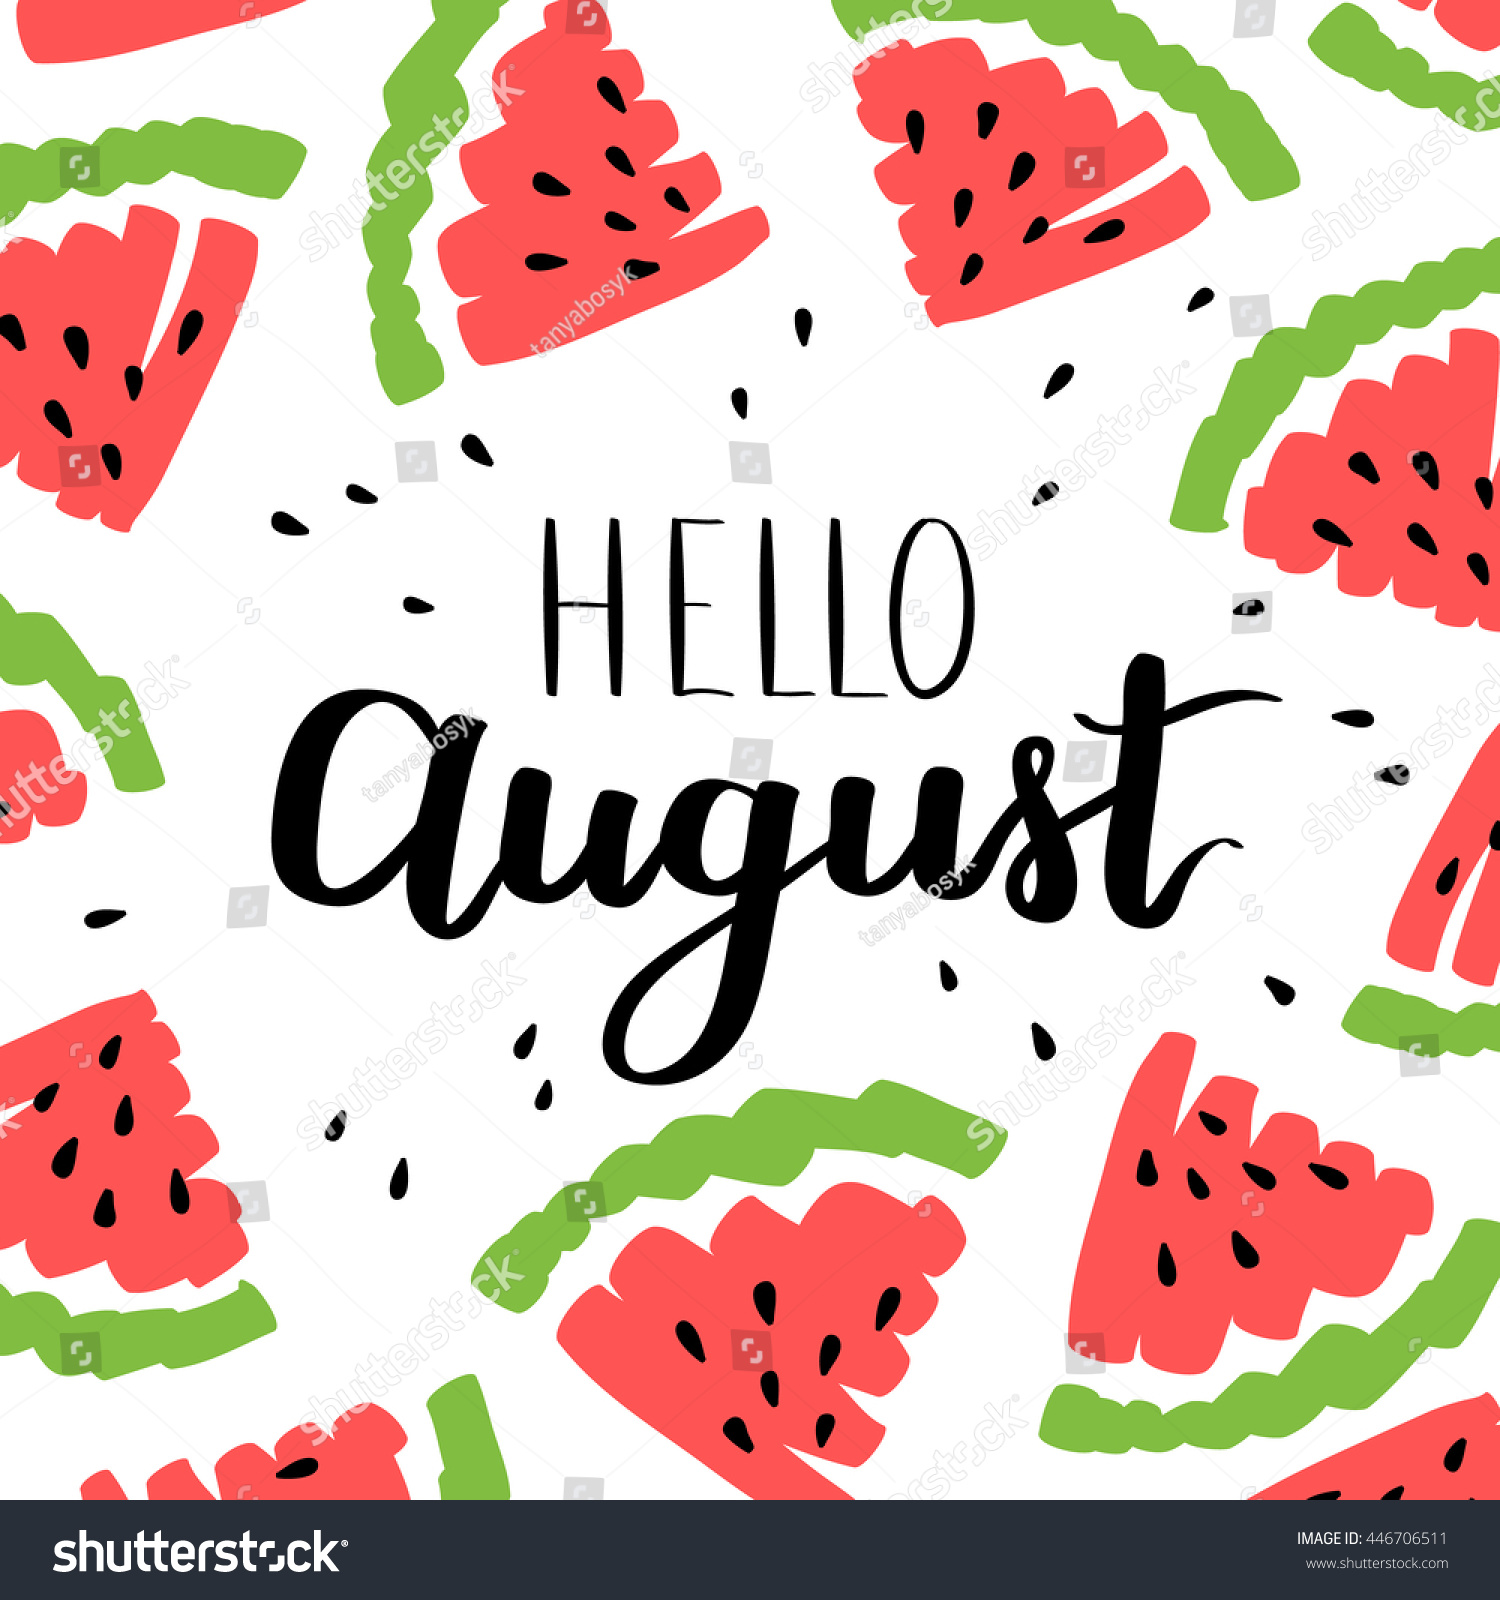 Great Vector Illustration Card Inscription Hello August Stock Vector 446706511    Sh..